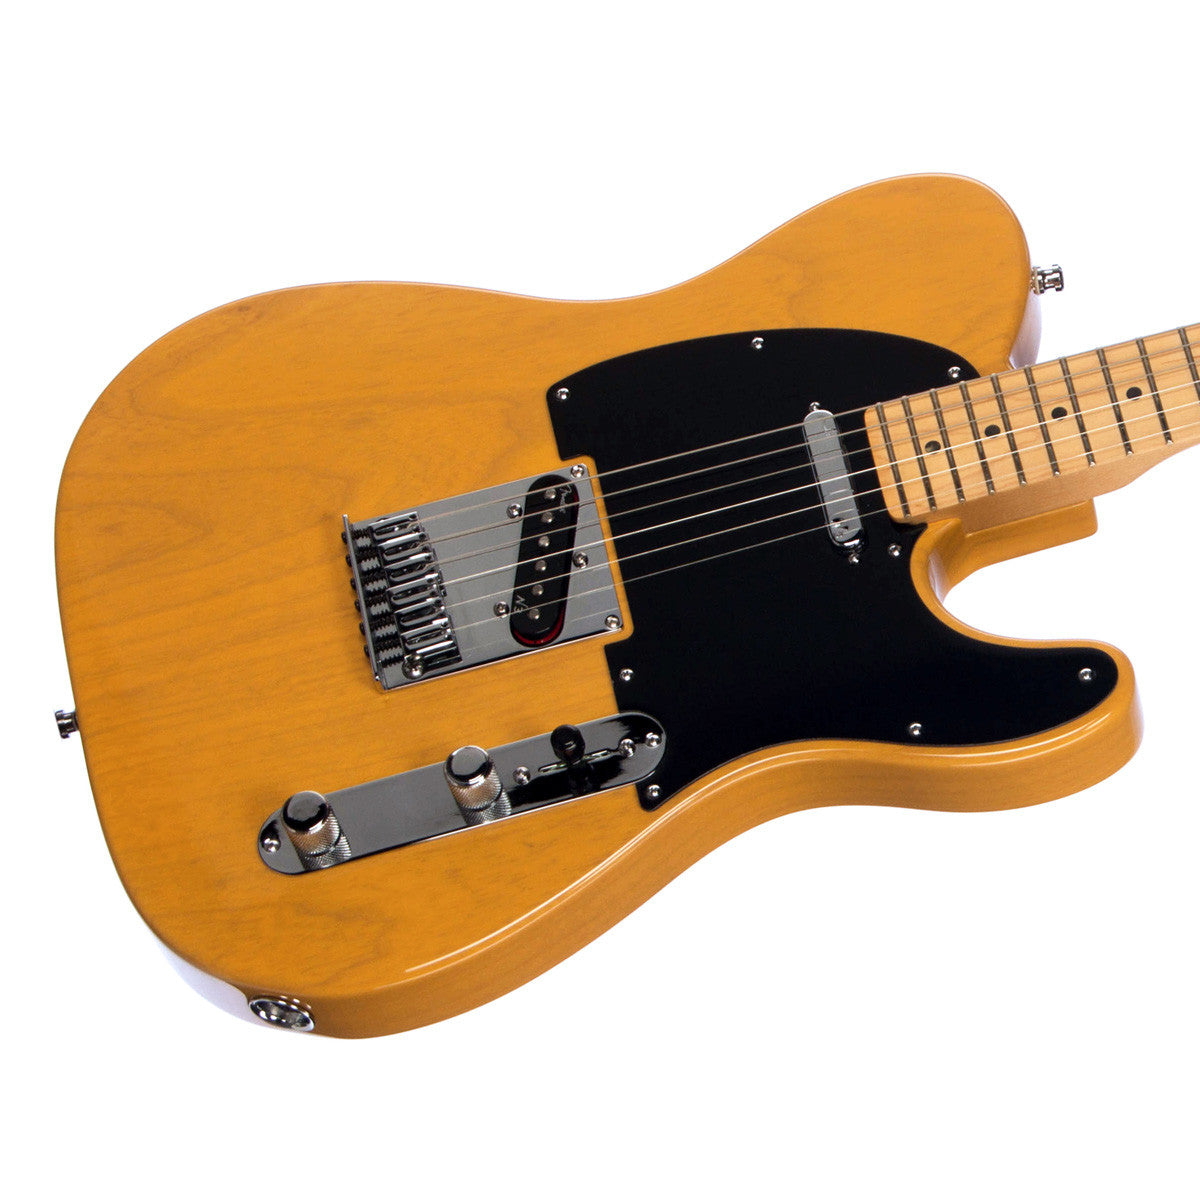 fender_american_deluxe_telecaster_am_dlx_tele_butterscotch_blonde_maple_neck_electric_guitar_0119502750_frontbody american deluxe telecaster wiring diagrams dolgular com fender american deluxe telecaster wiring diagram at creativeand.co